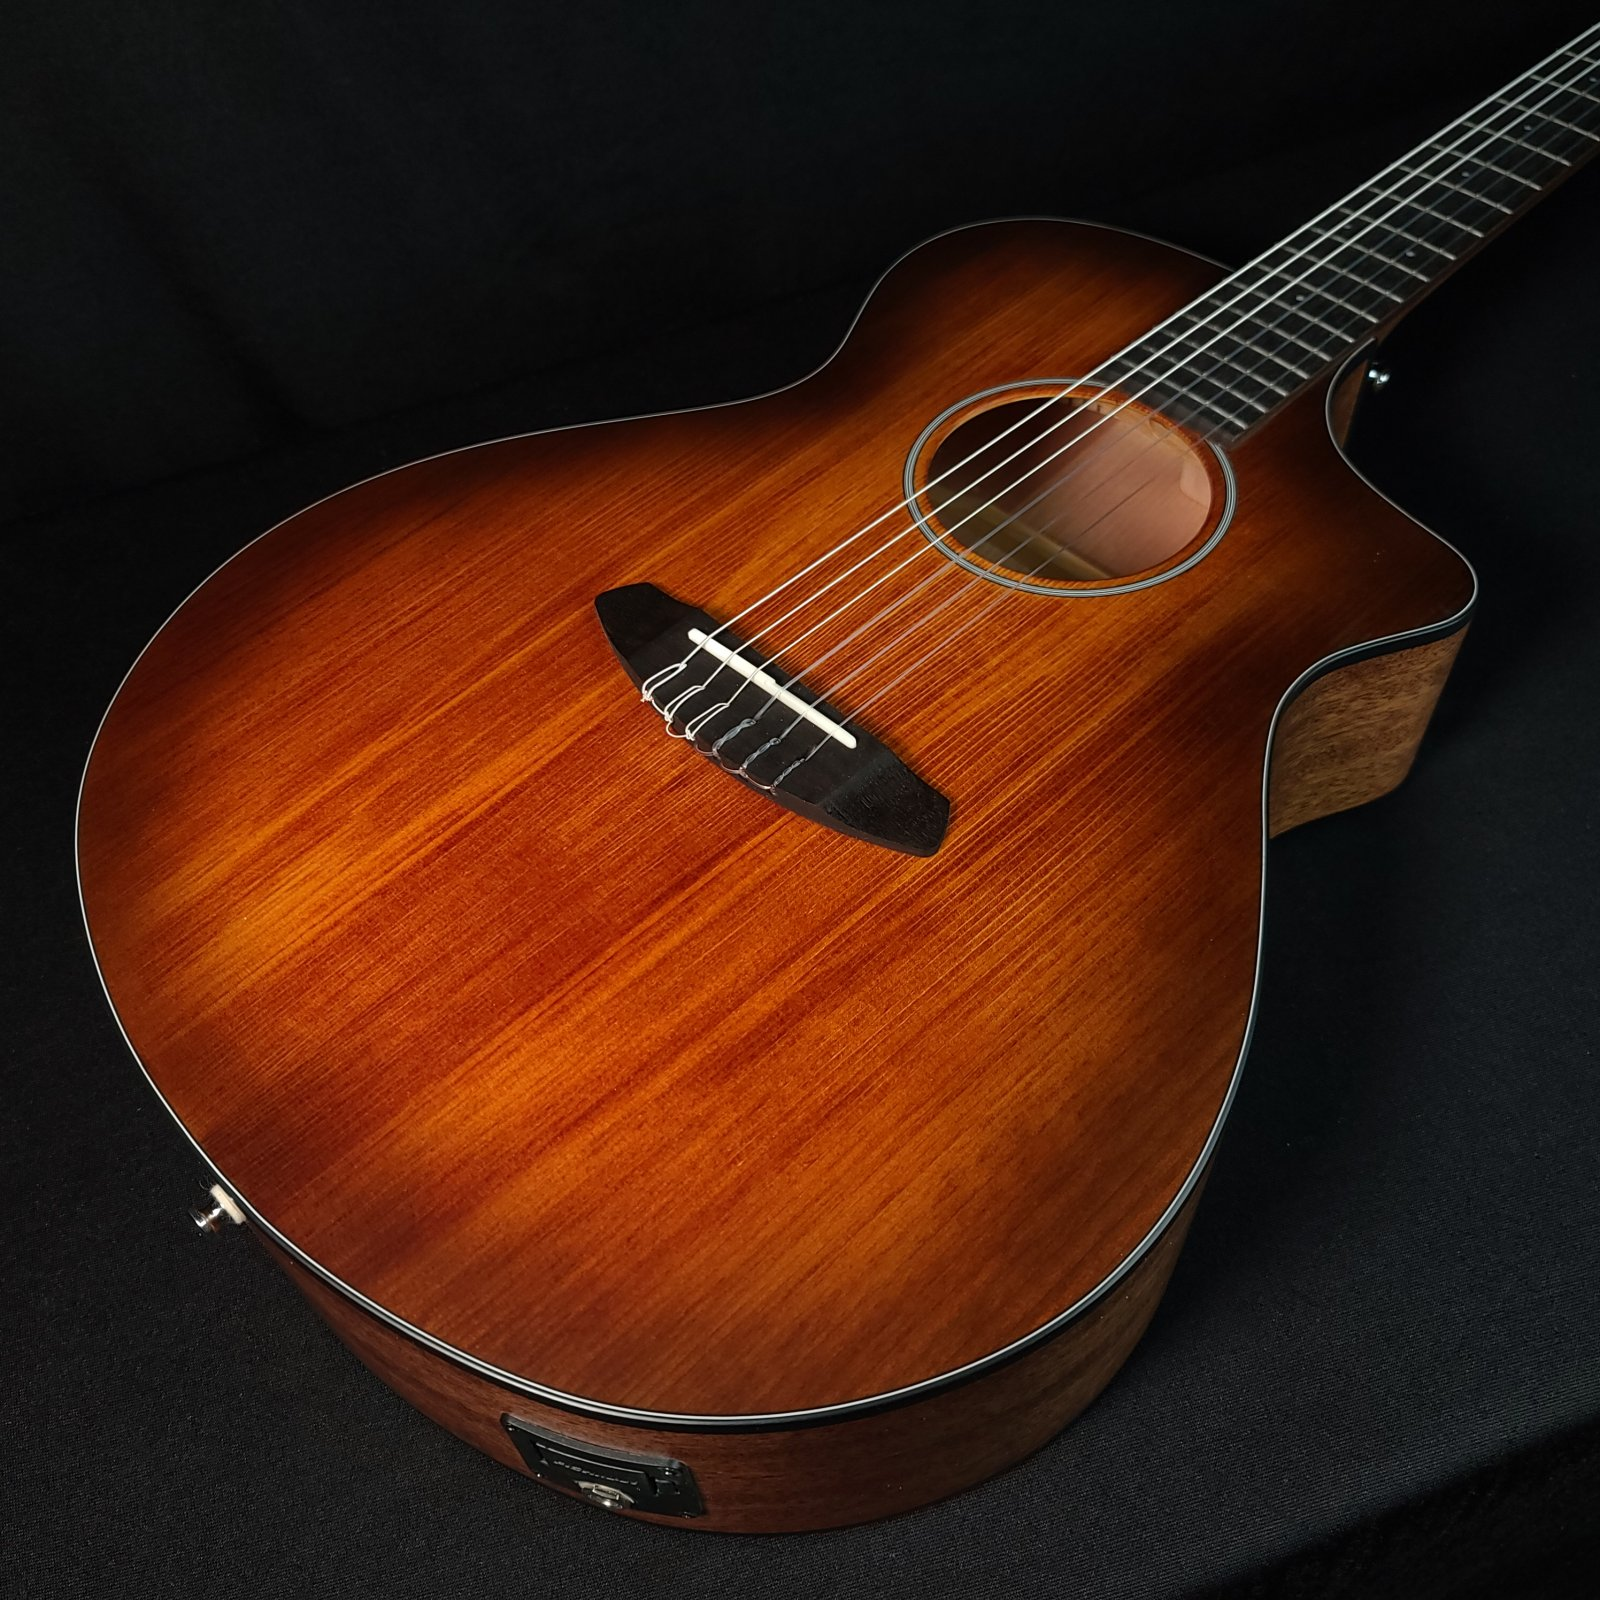 Breedlove Discovery Concert Nylon String Cutaway Acoustic Electric Guitar